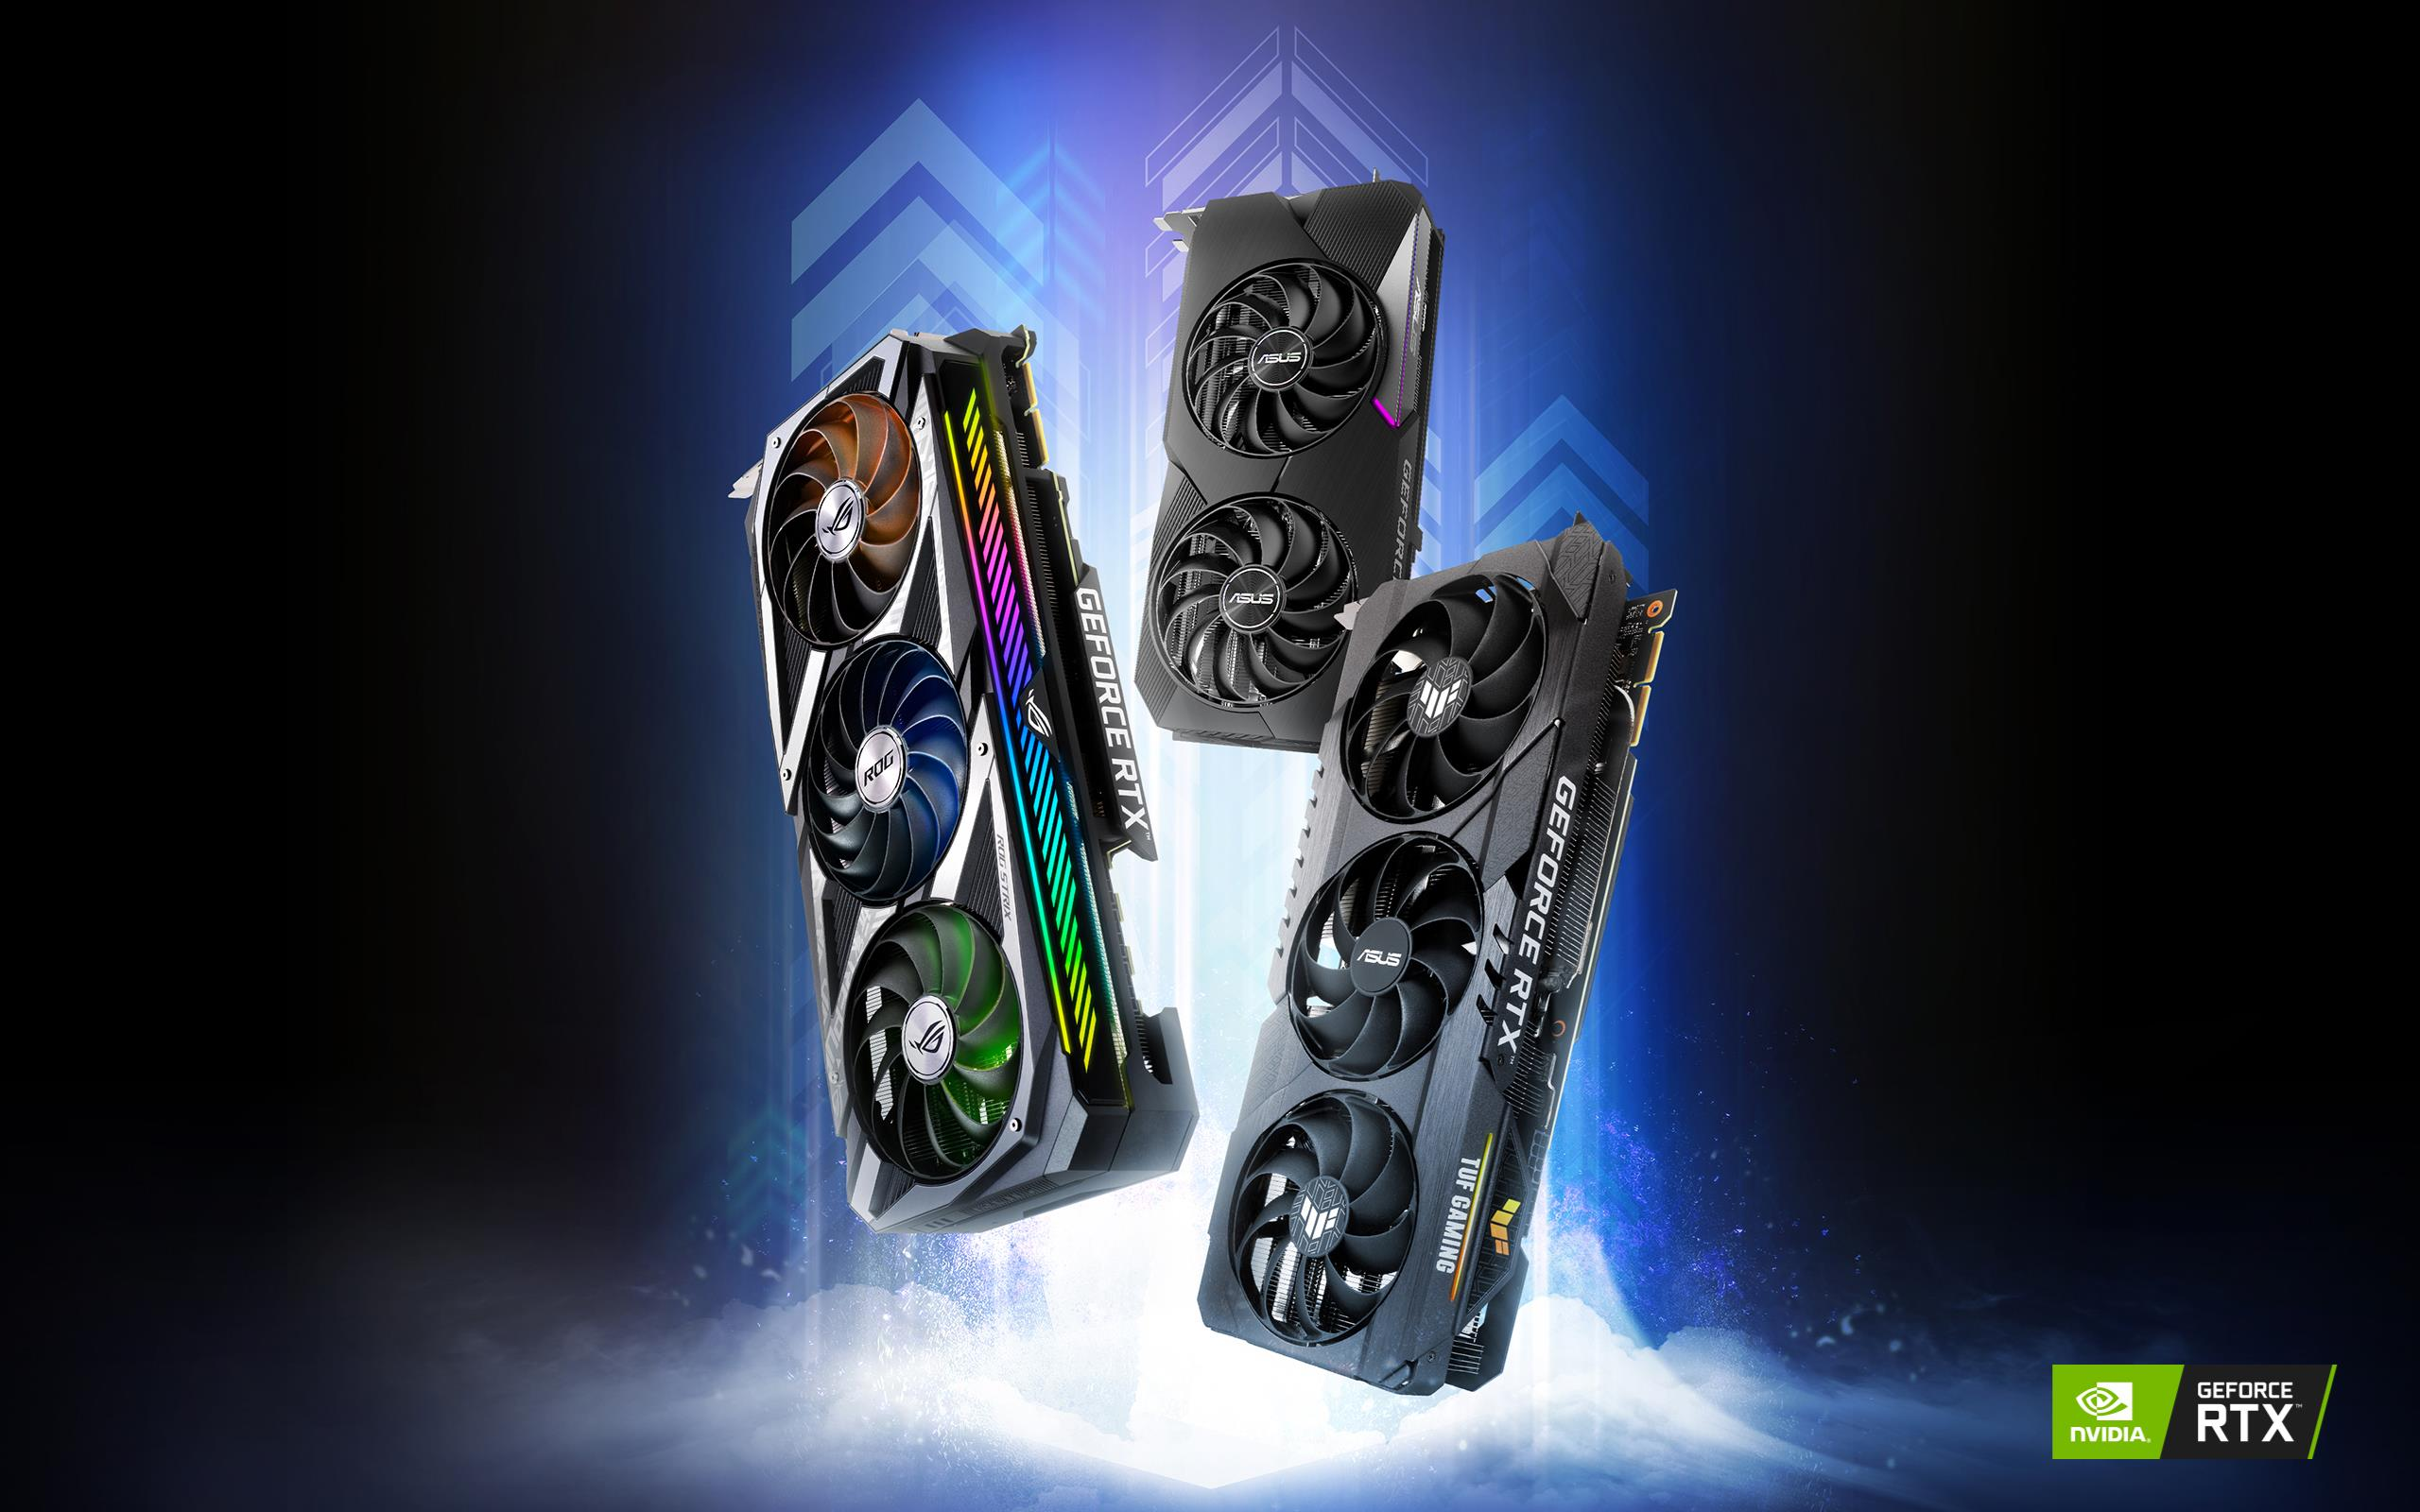 ASUS GeForce RTX™ 3060 Ti Graphics Cards